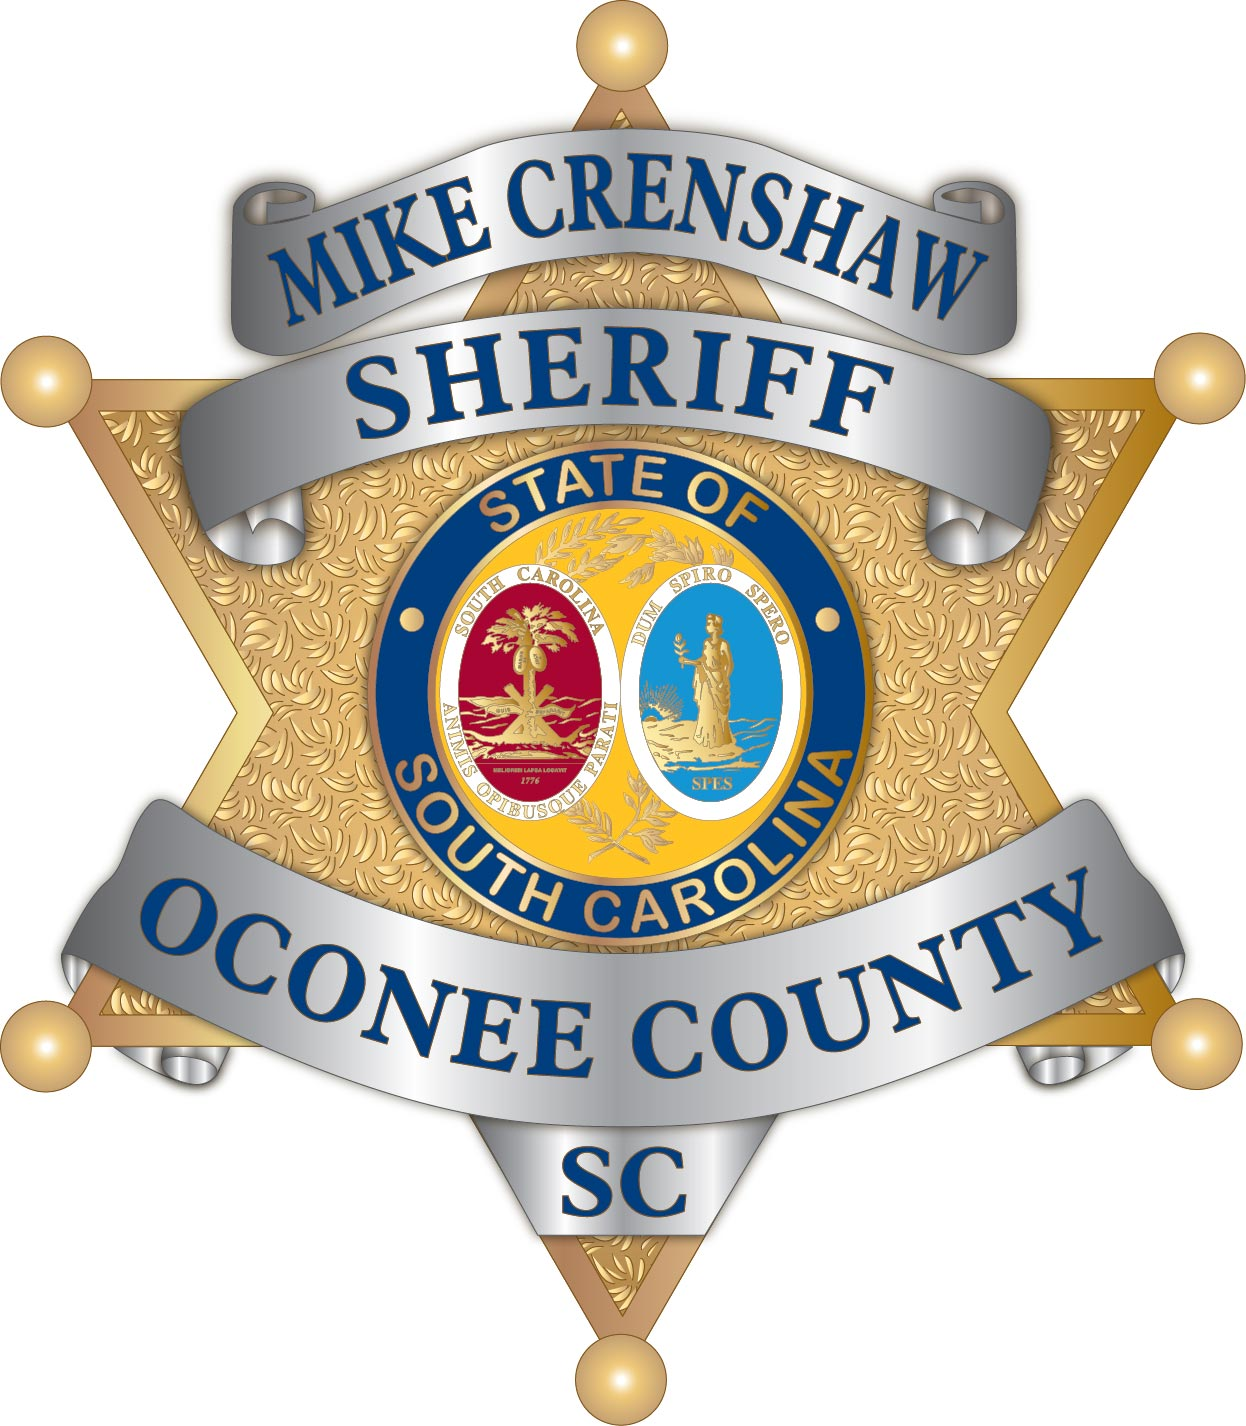 oconee county hispanic single men The population was 3,801 at the 2000 census and it is the county seat of oconee  by clevelands men,  designated place in oconee county, south.